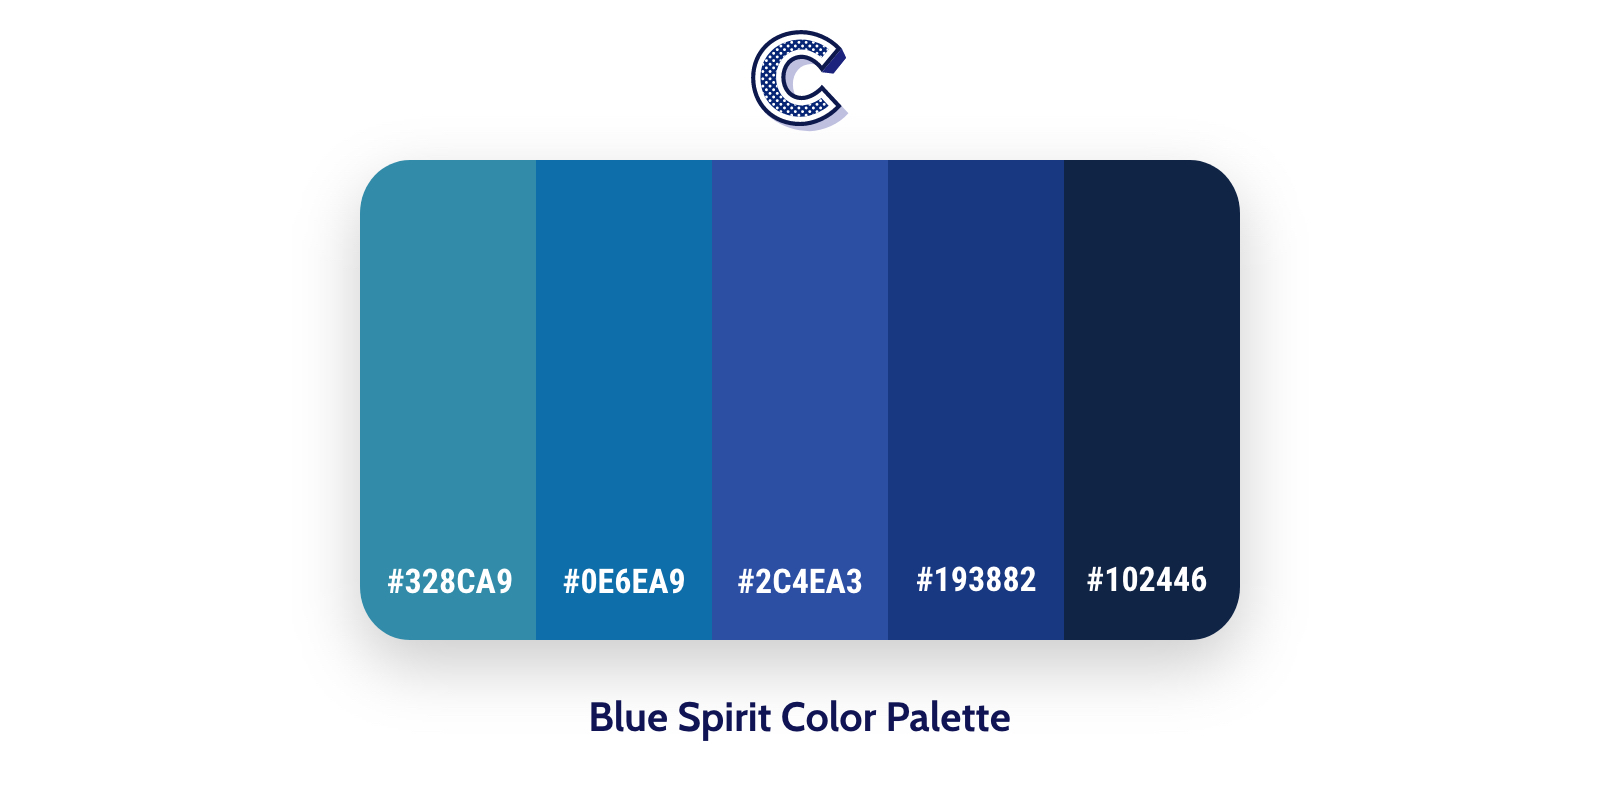 the featured image of blue spirit color palette